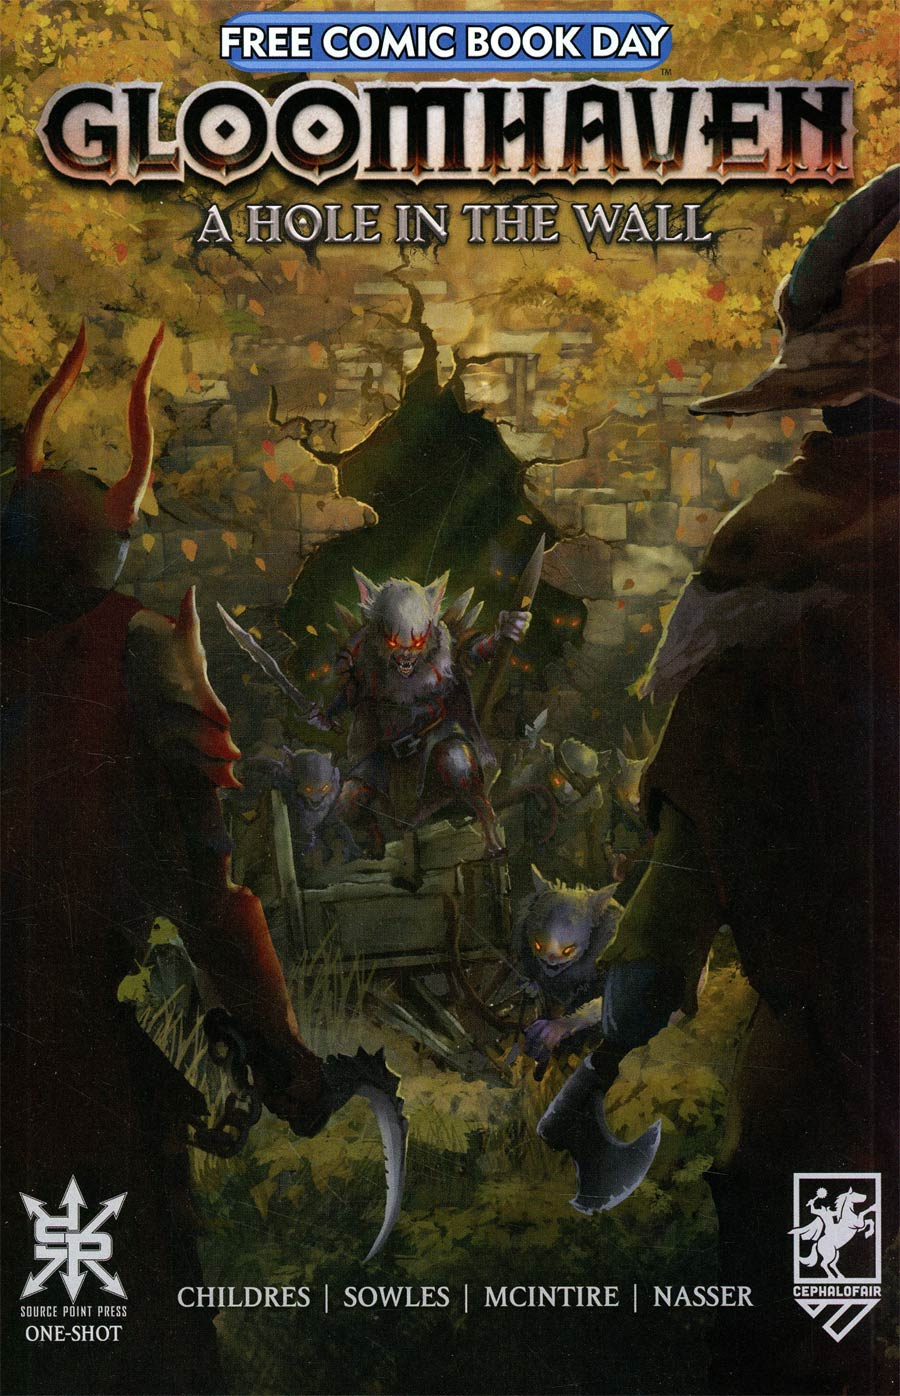 Gloomhaven A Hole In The Wall #1 (One Shot) FCBD 2021 Edition